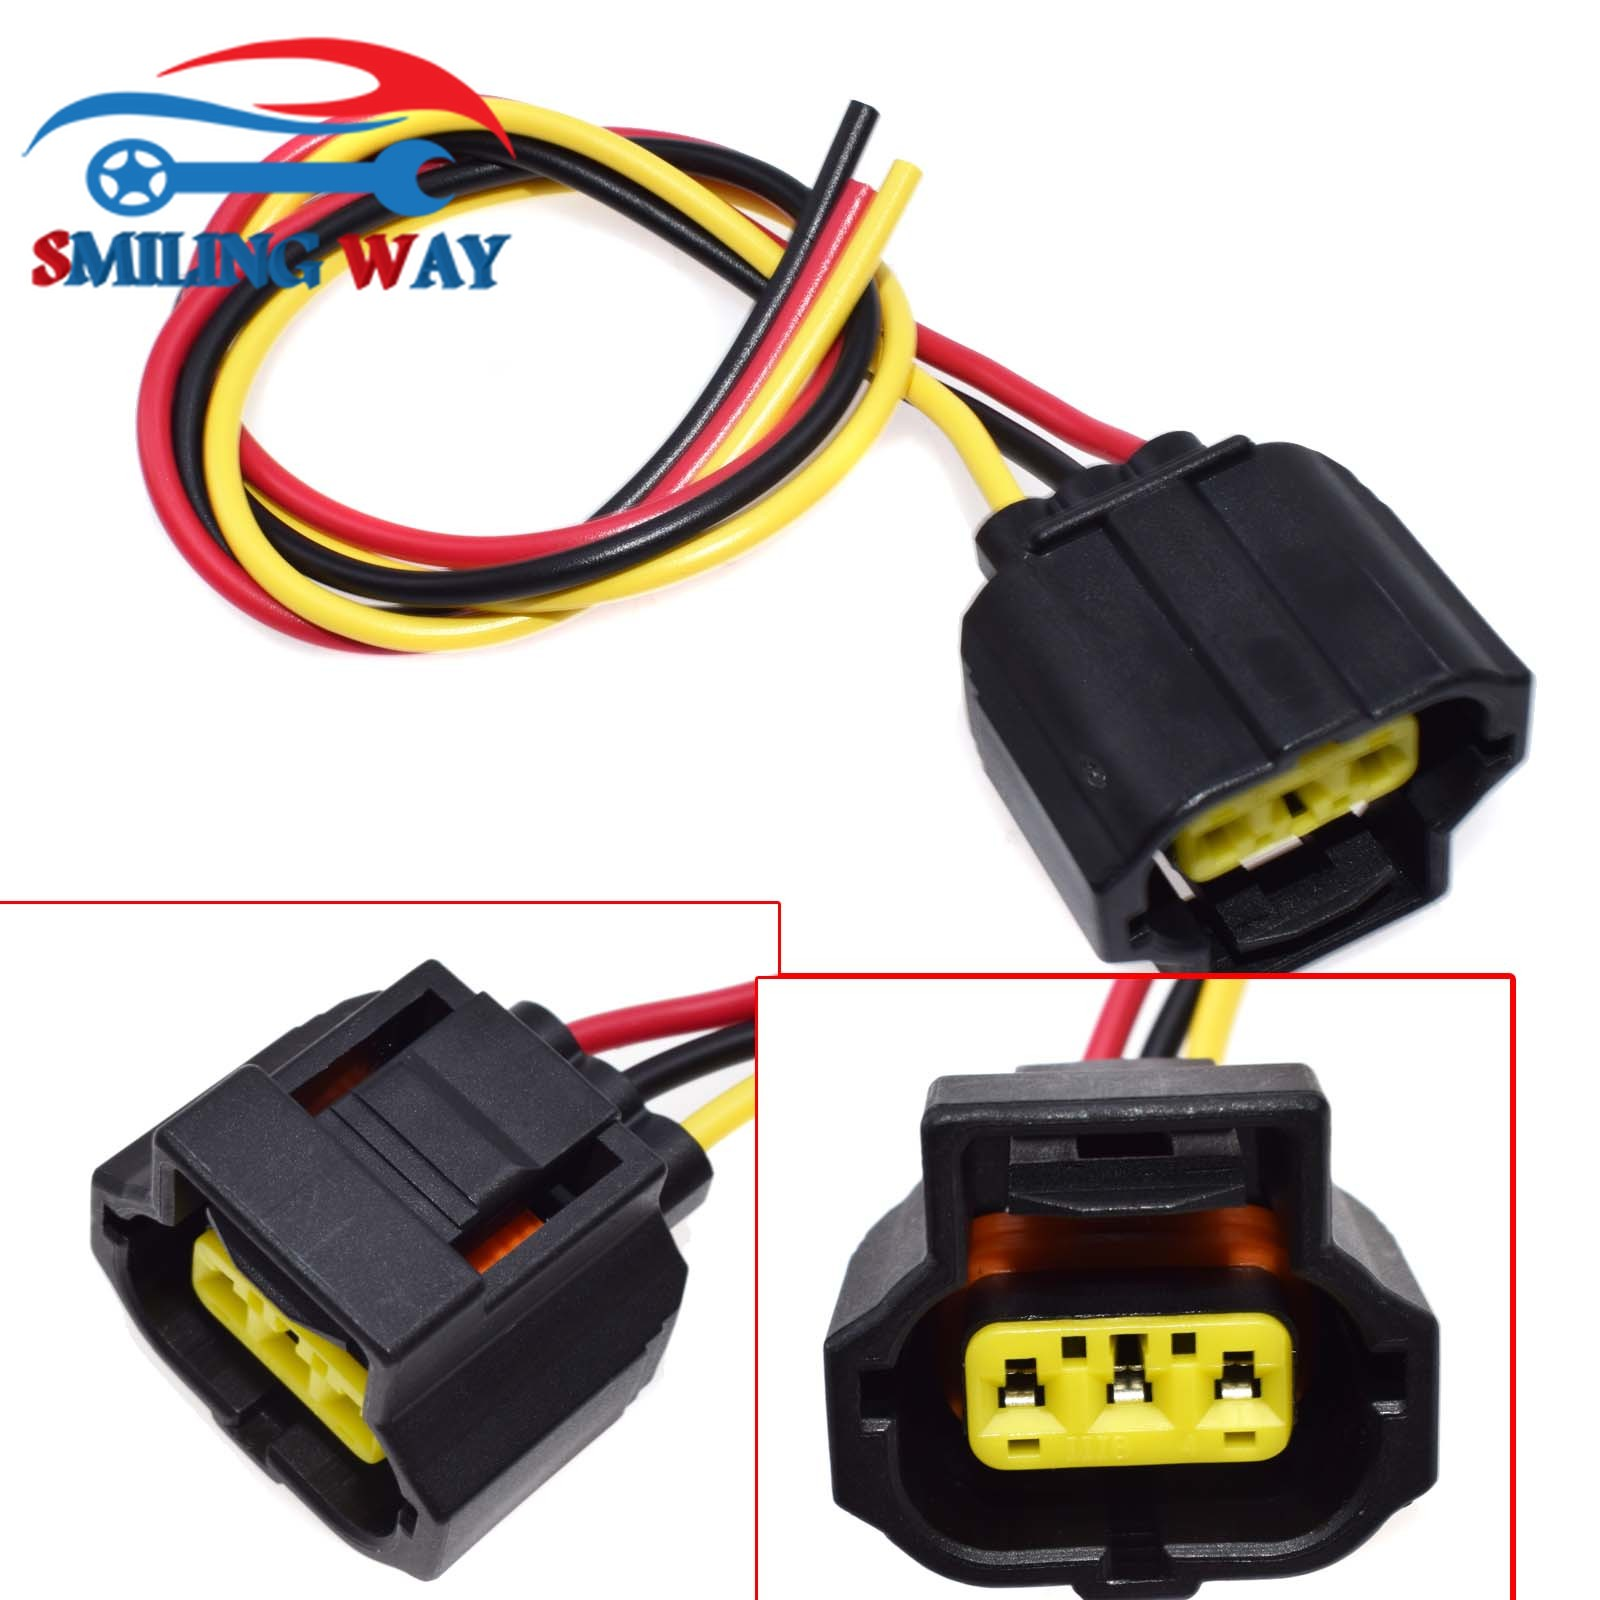 smiling way 3 pins sensor alternator connector wire harness wiring ford wiring pigtails pictures 2017 escape ford wiring pigtail [ 1600 x 1600 Pixel ]